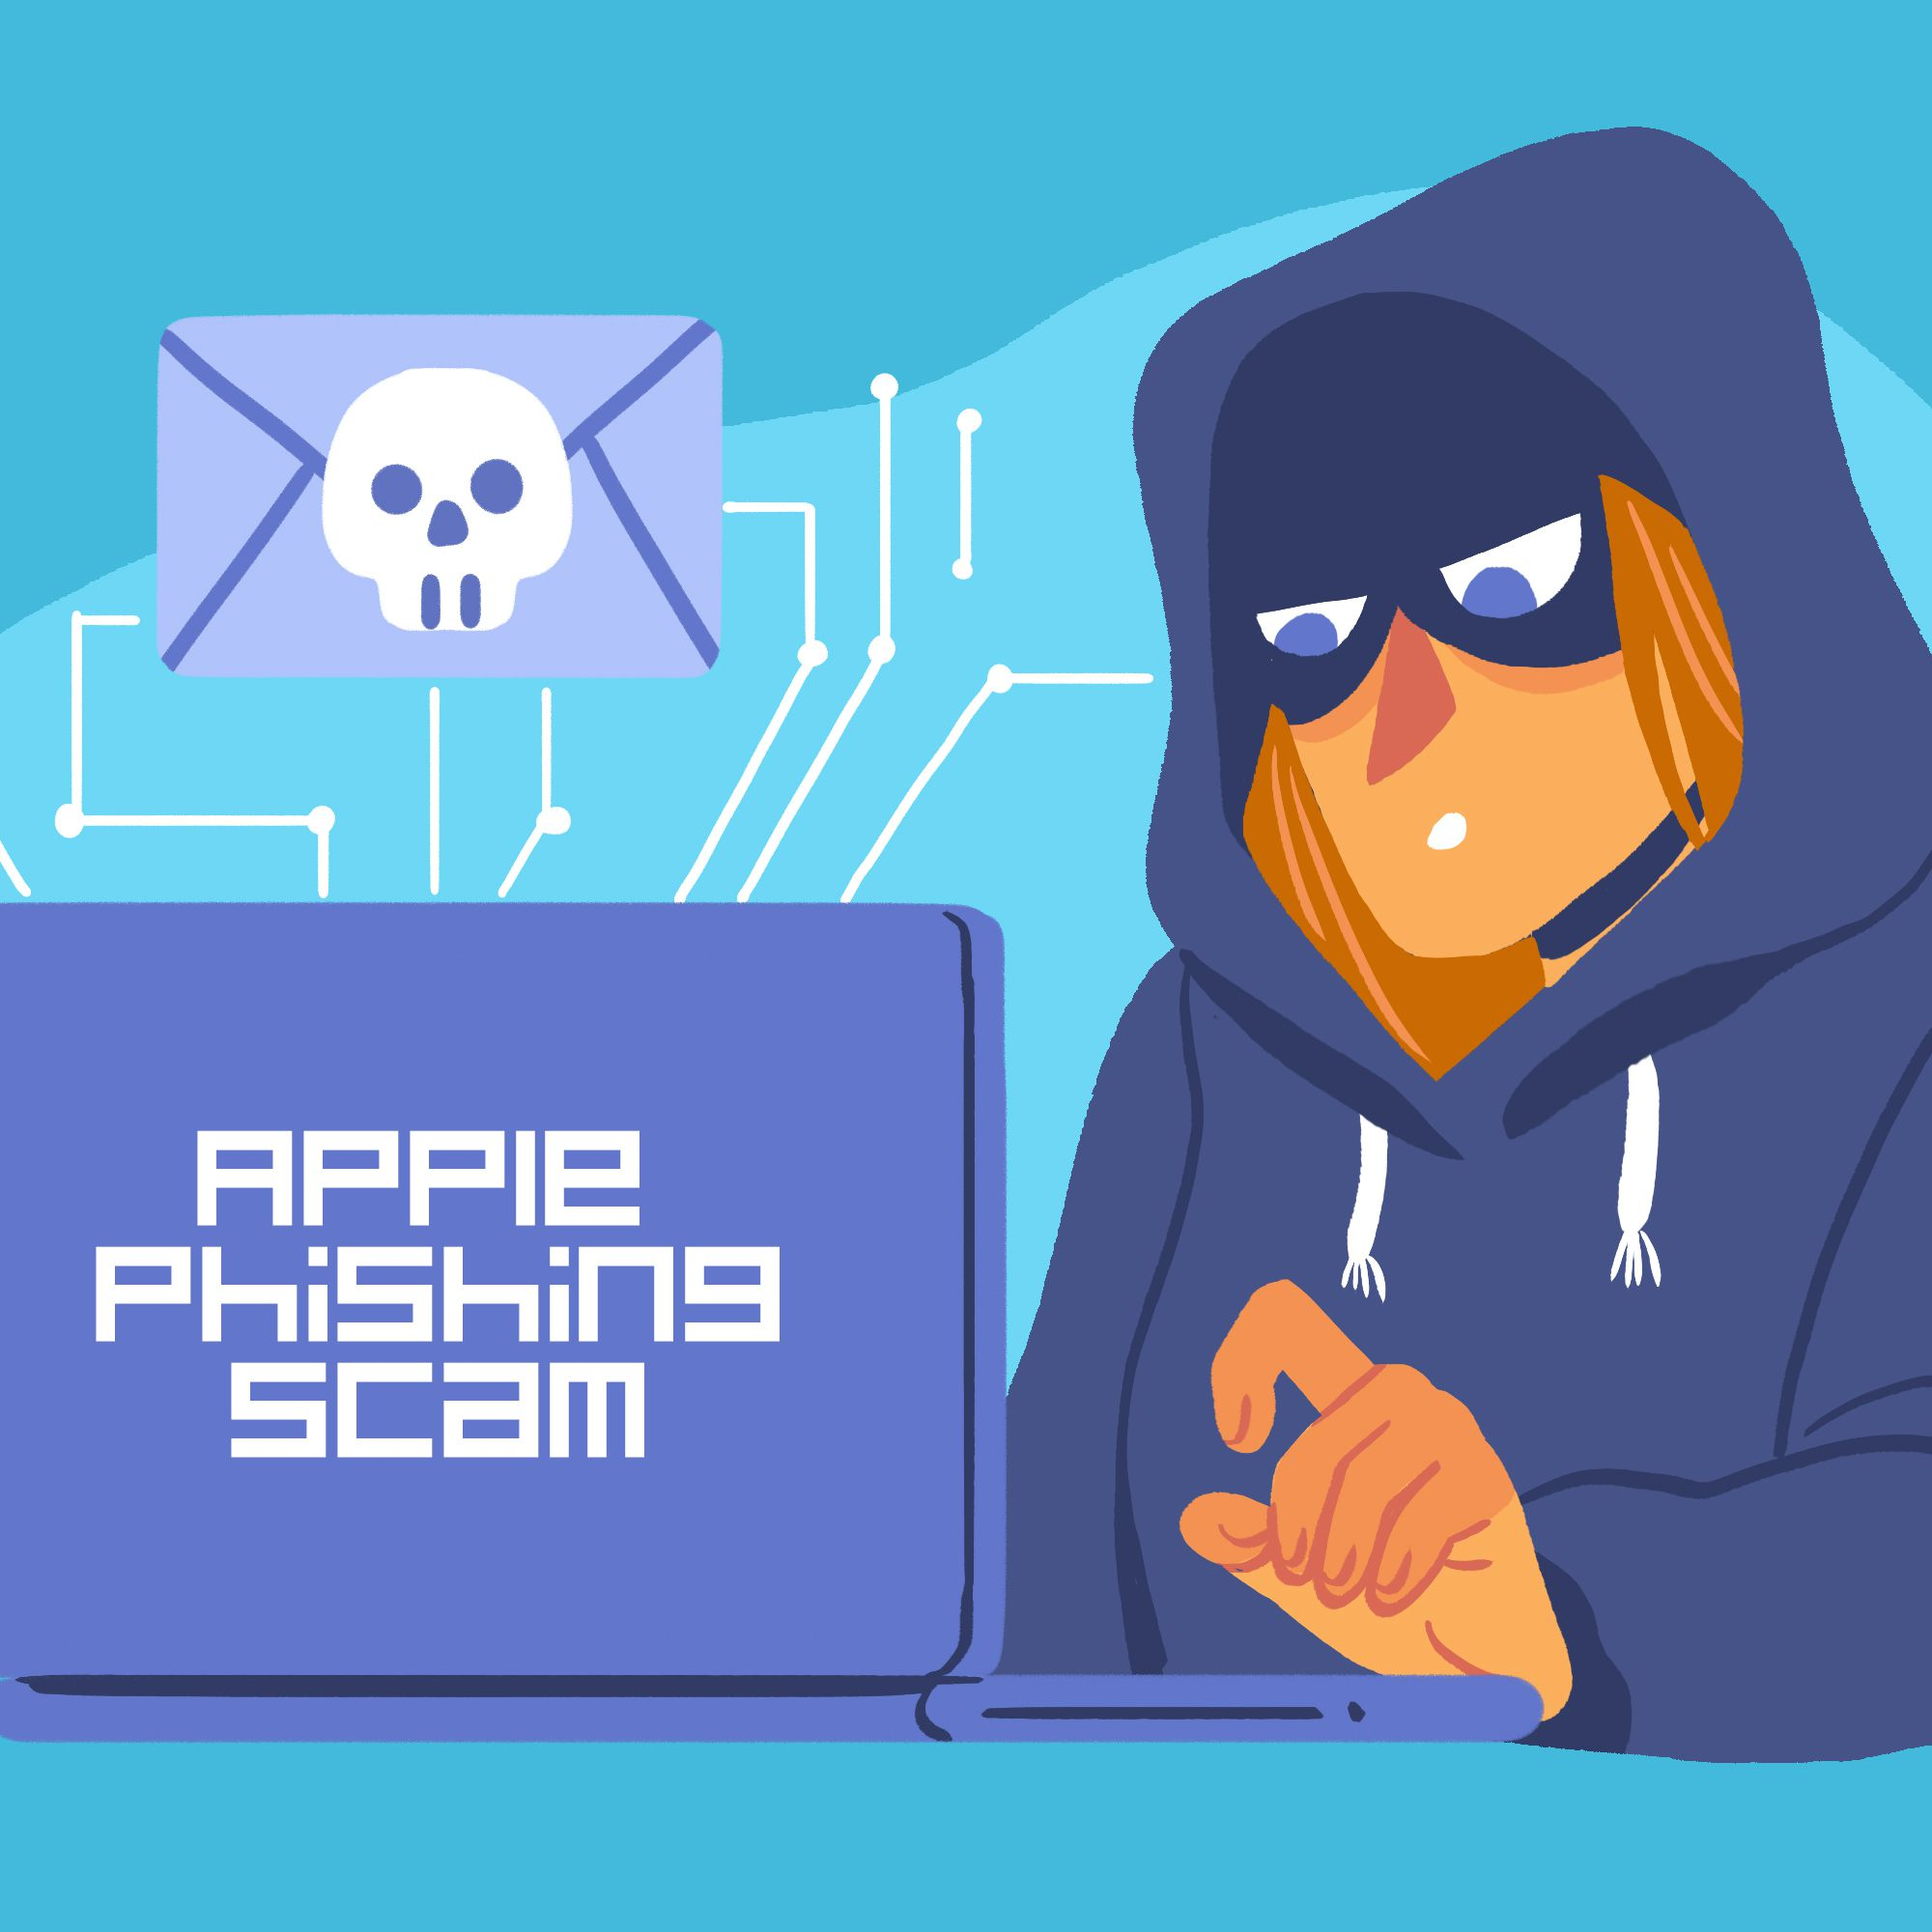 The Apple Phishing Scam: What It Is and How to Protect Yourself